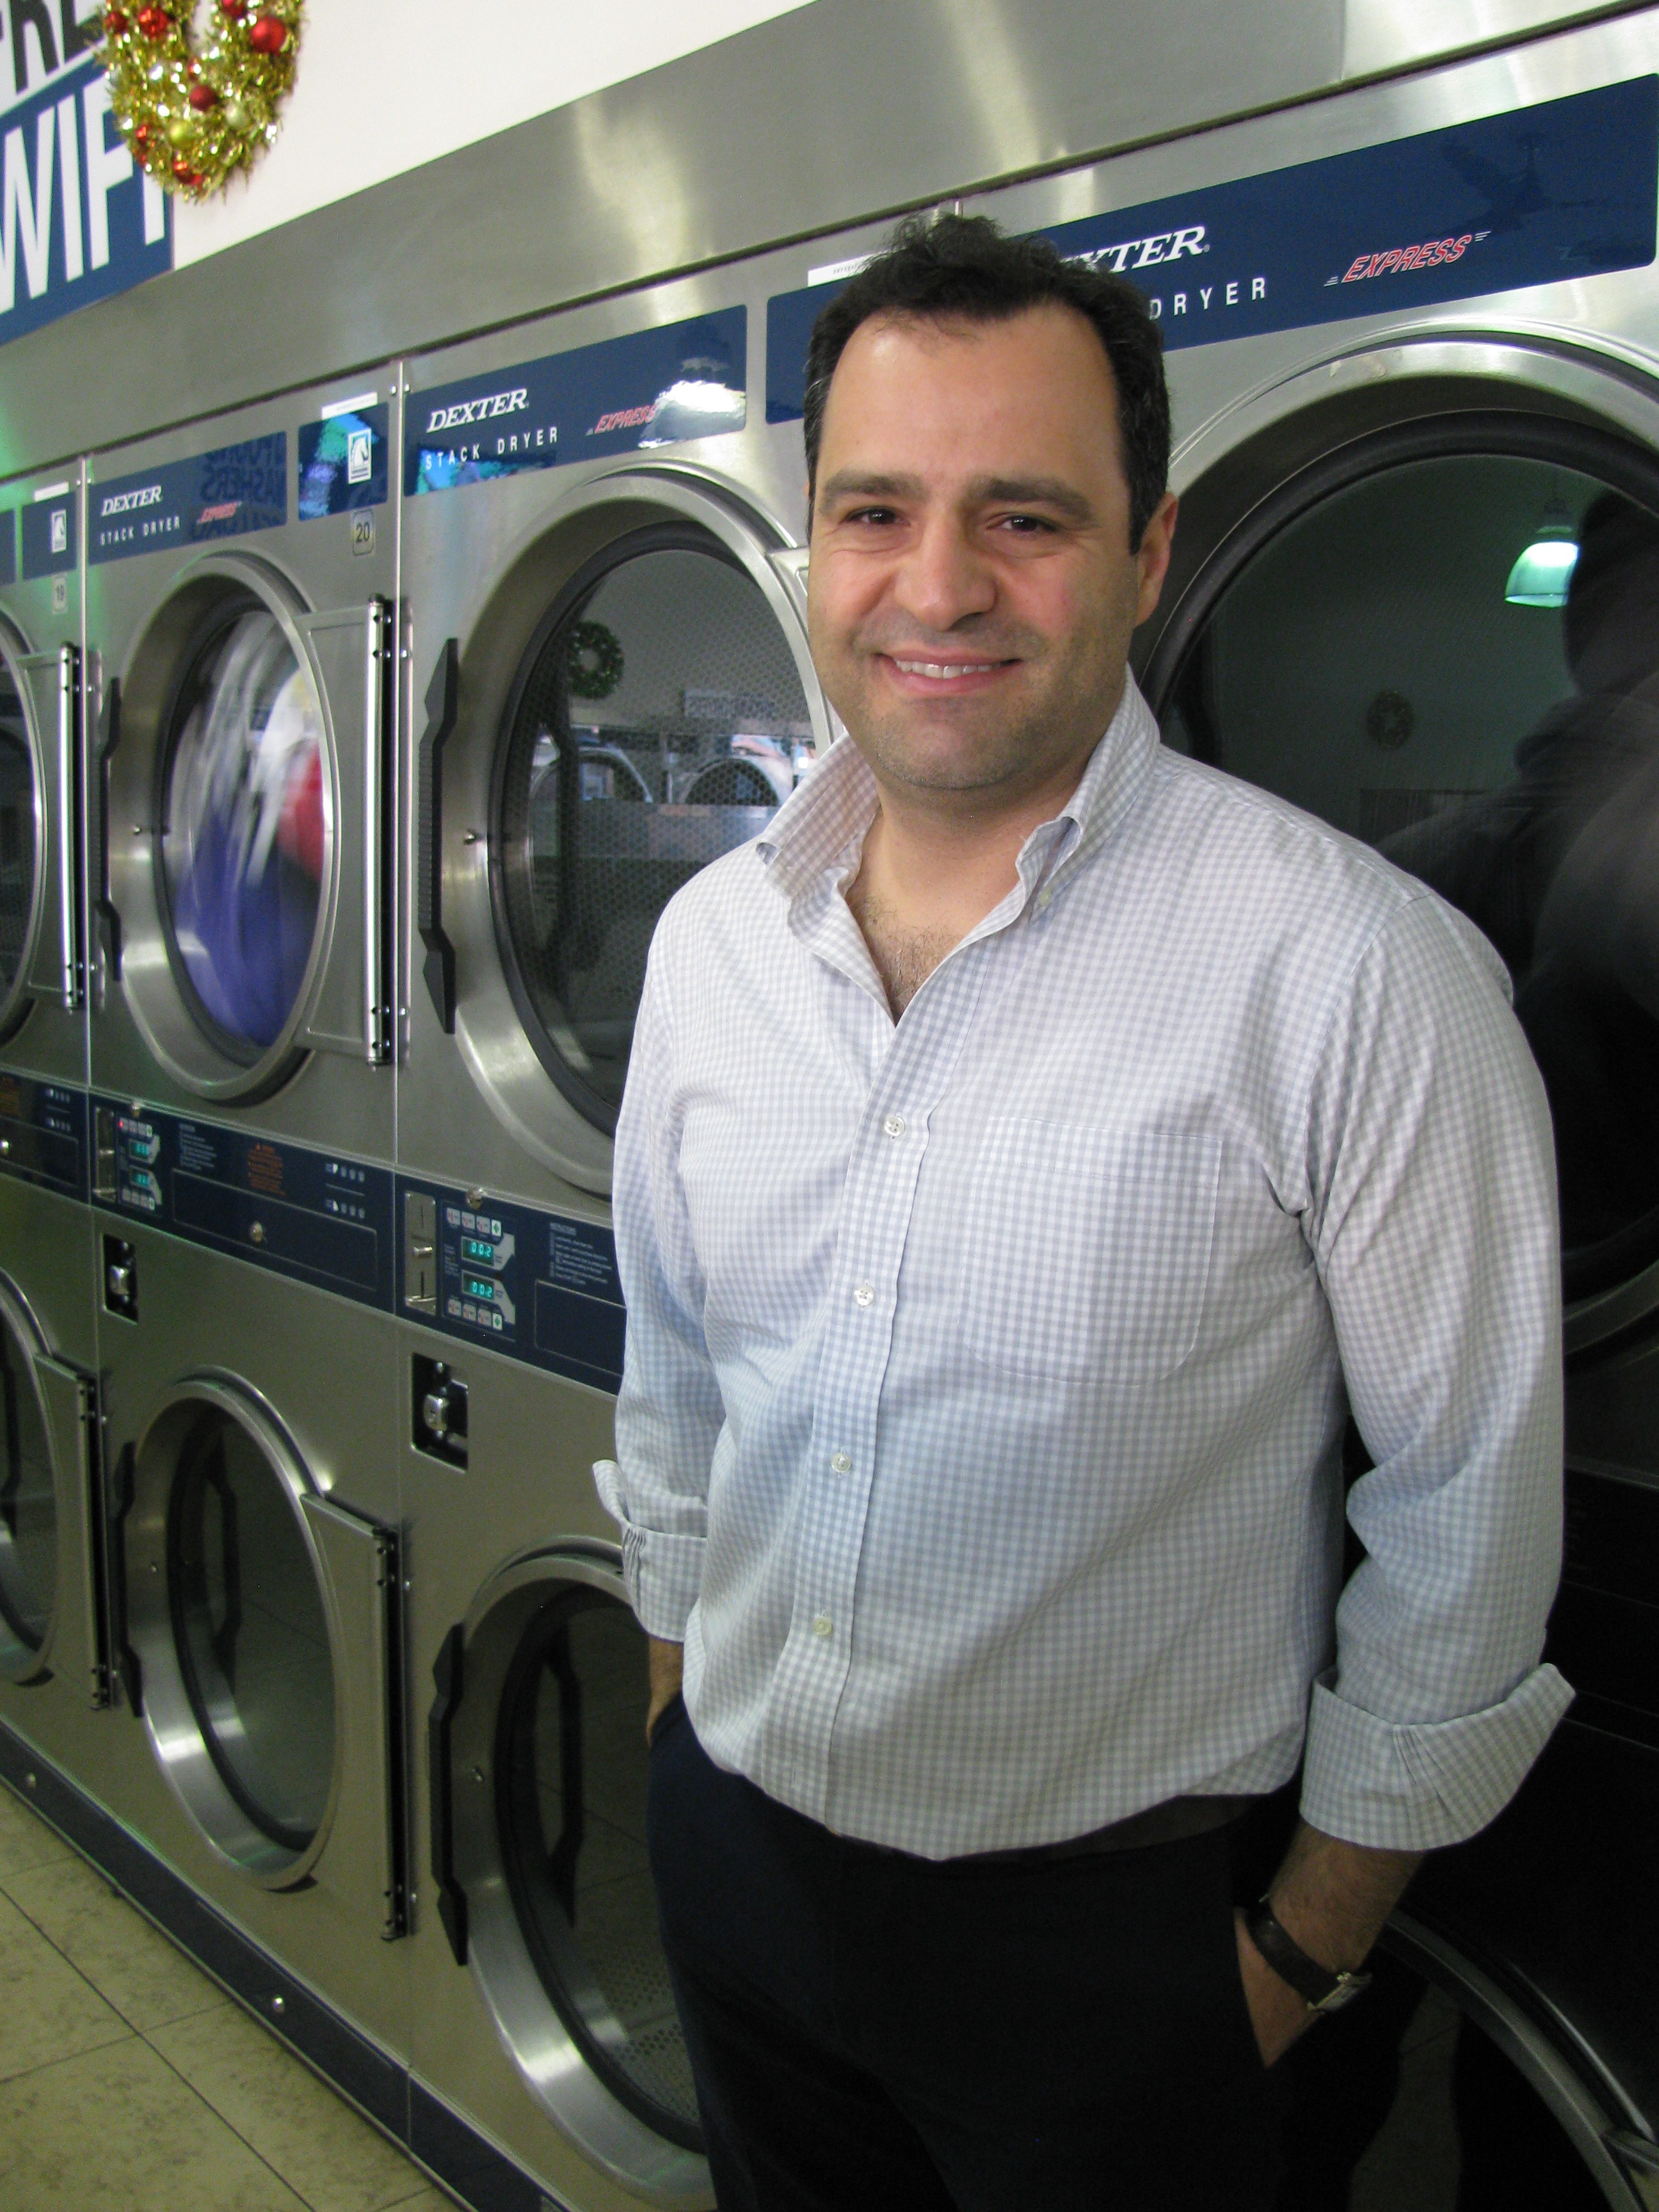 Successful Los Angeles Coin Op Laundry Owner Expands